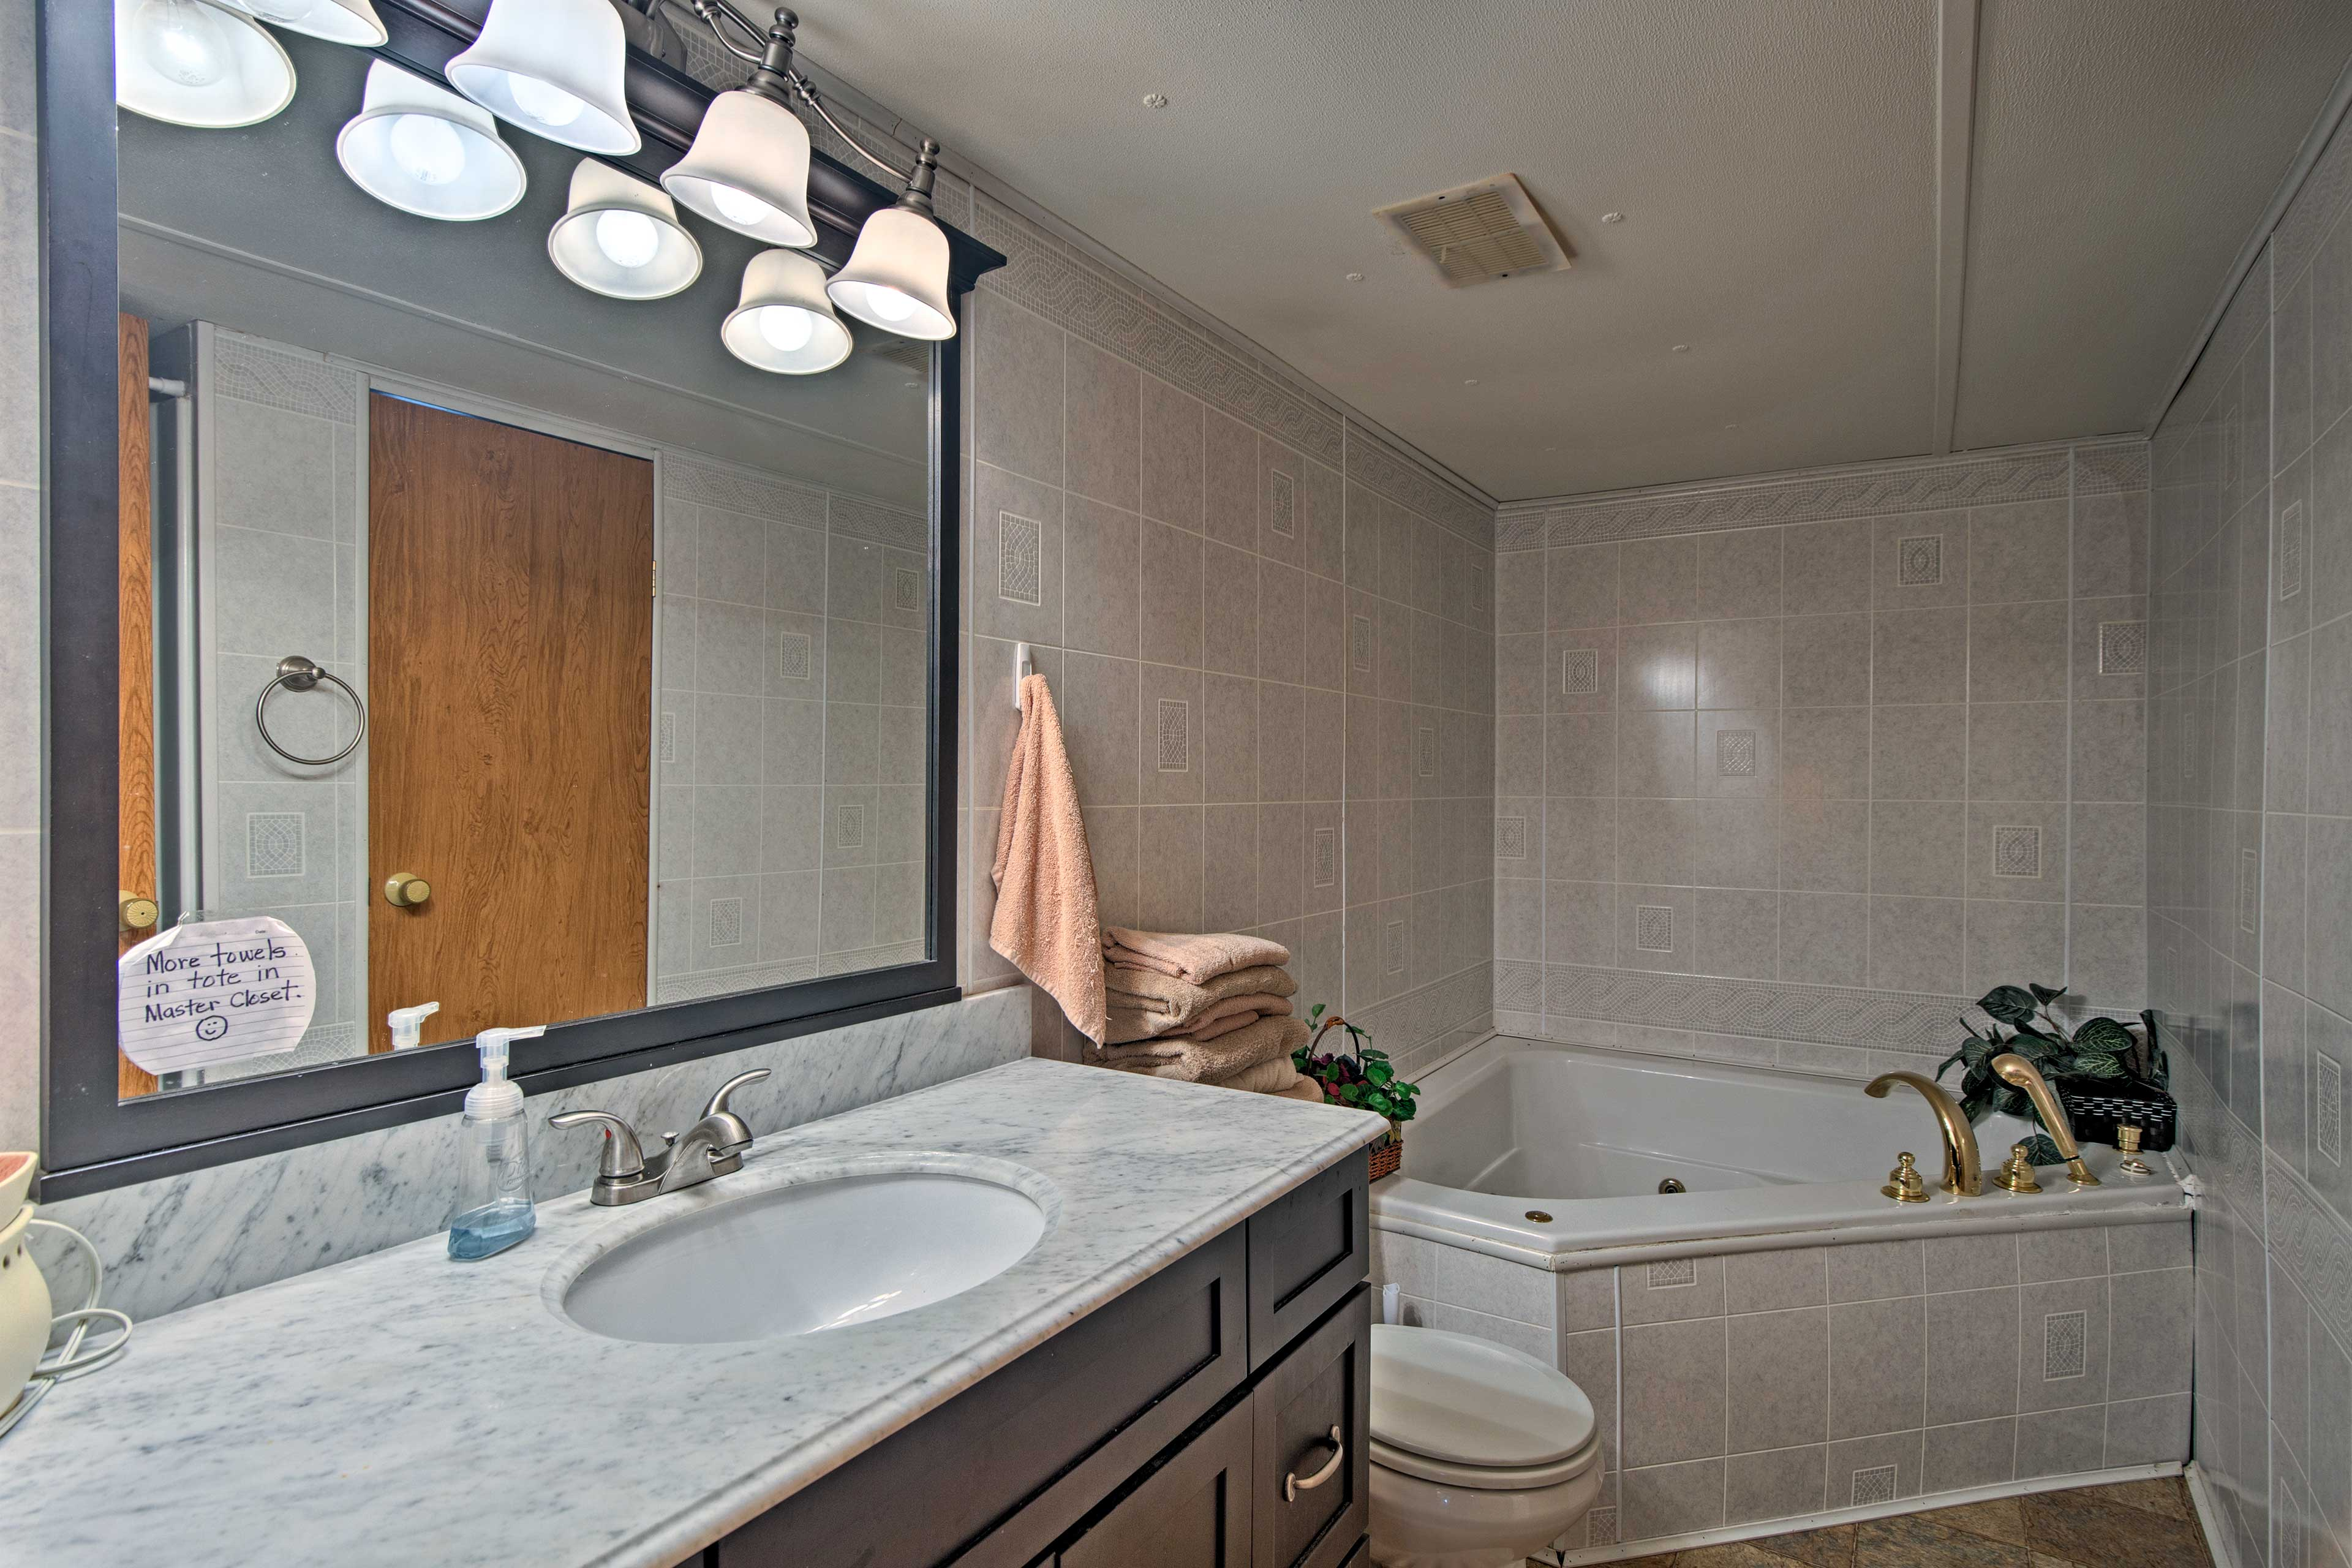 The en-suite master bathroom features a Jacuzzi tub and a walk-in shower.